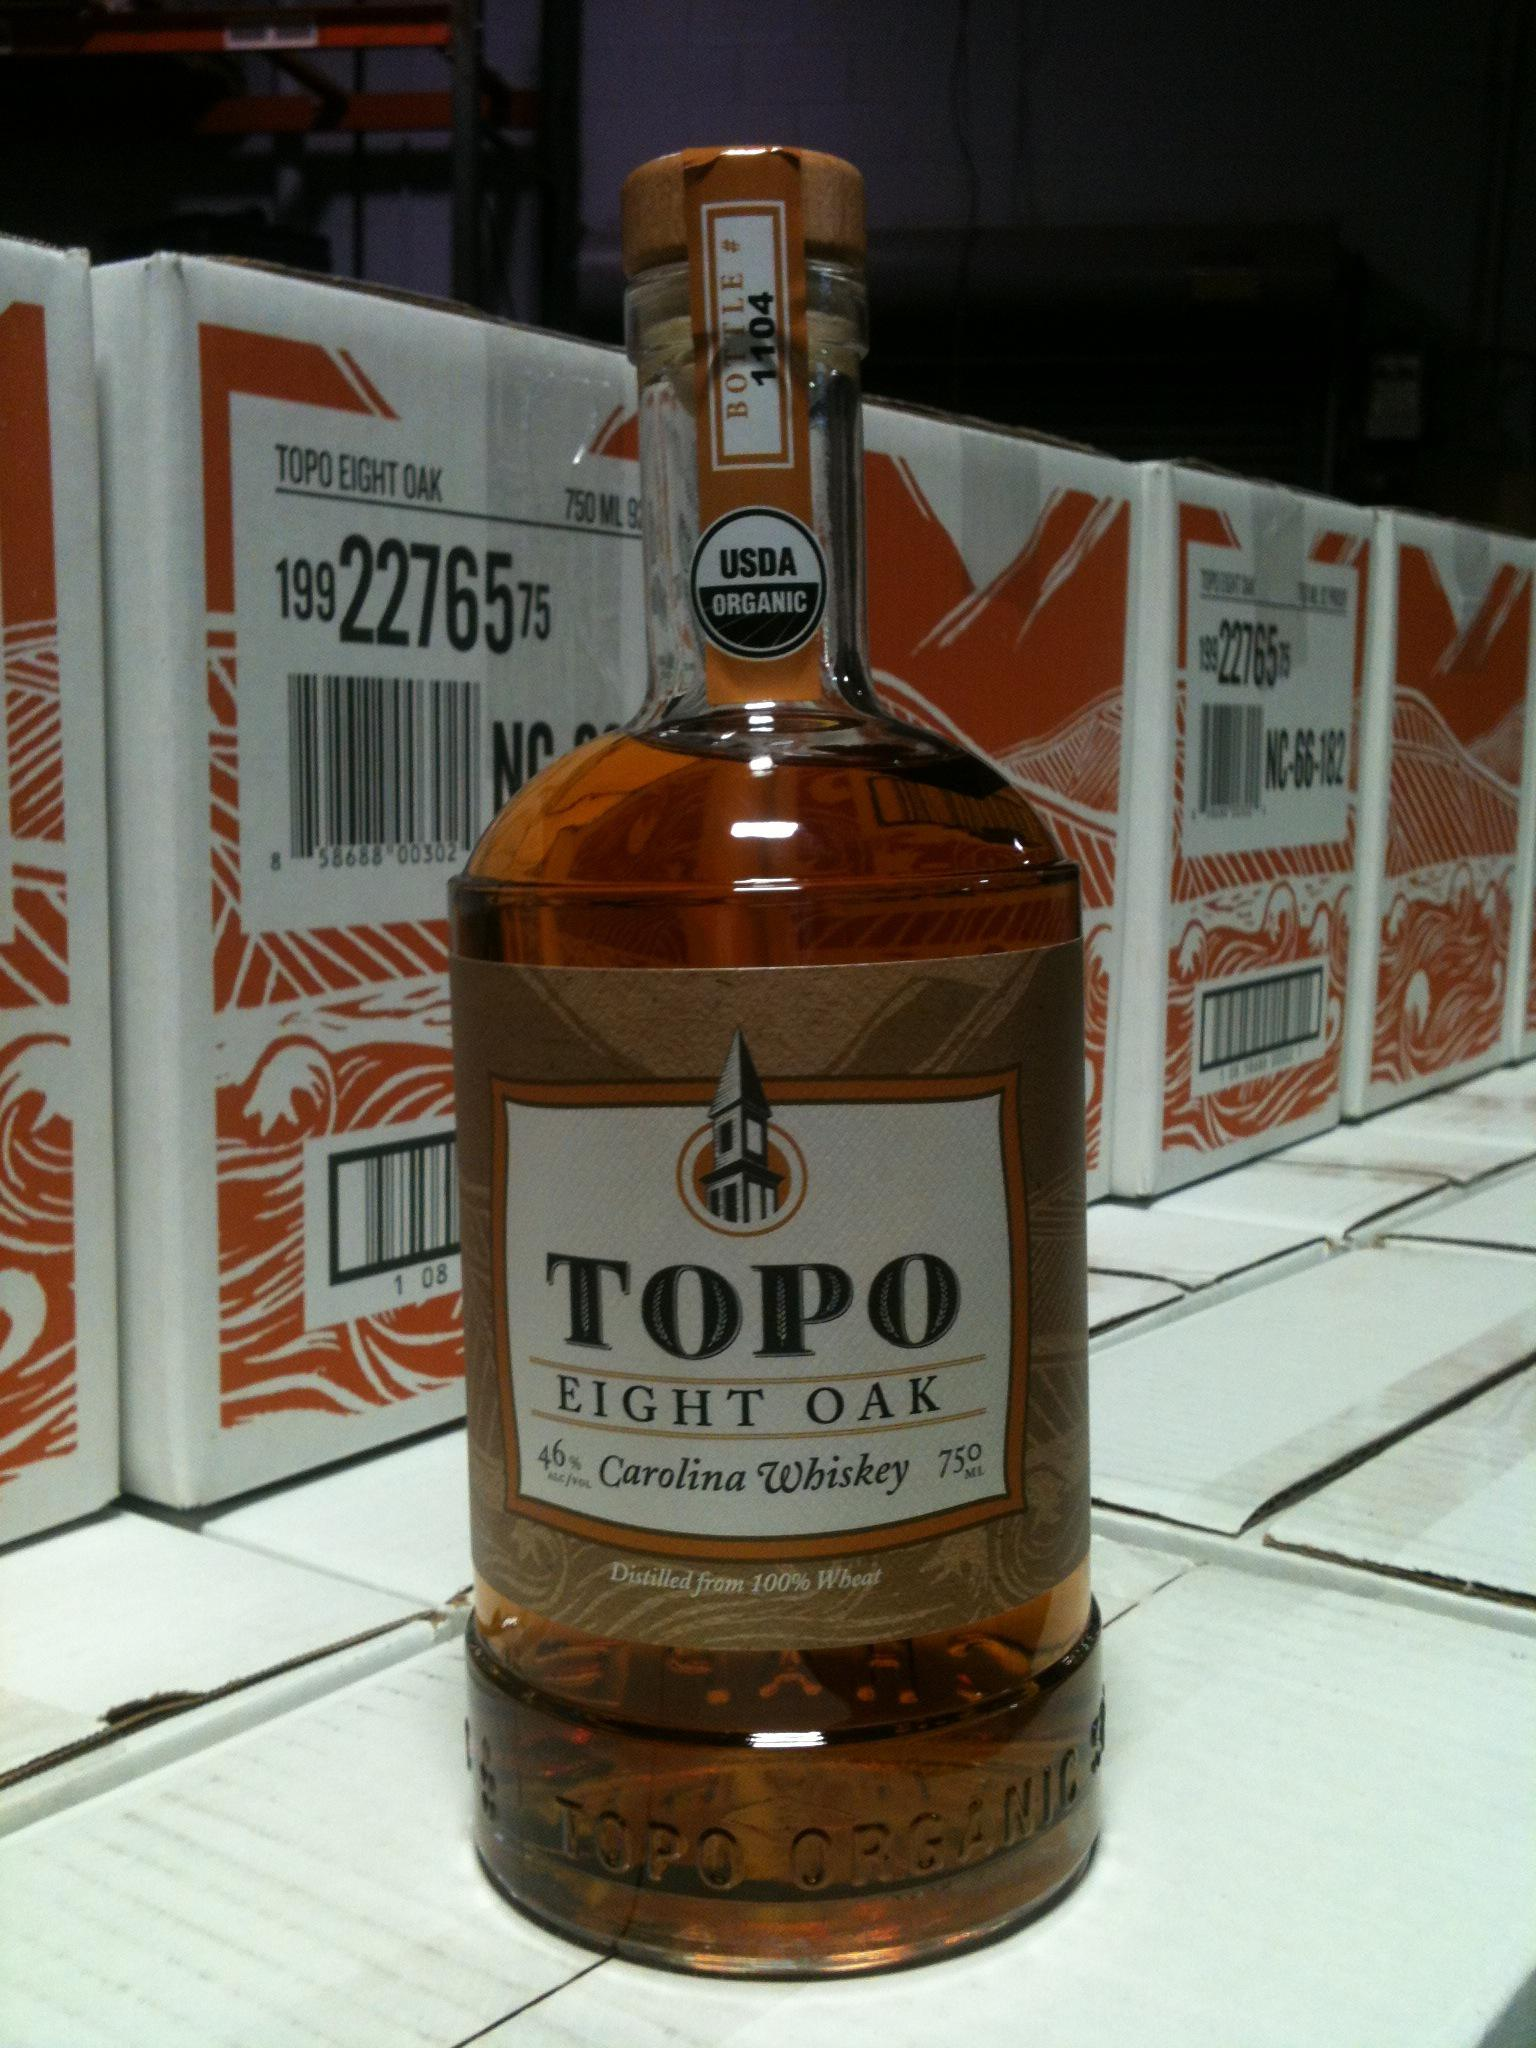 """RT @TOPOdistillery """"We're bottling TOPO Eight Oak Whiskey today! It will be available in NC ABC stores next week."""" http://t.co/AXBpTyjCfz"""